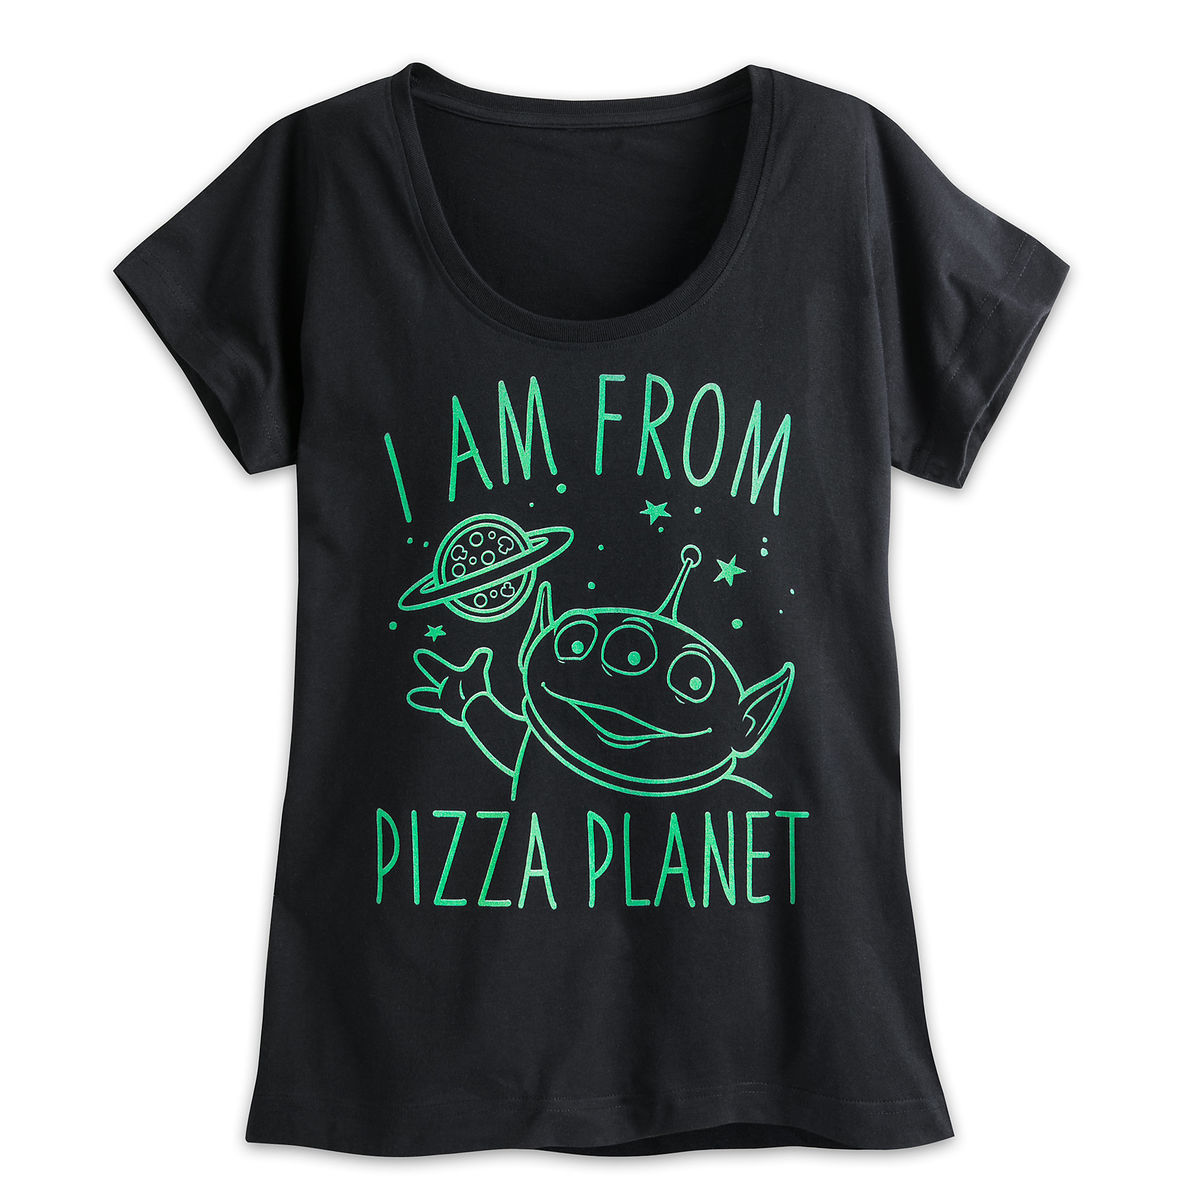 Product Image of Alien Pizza Planet Tee for Women - Toy Story   1 c38b5082f7